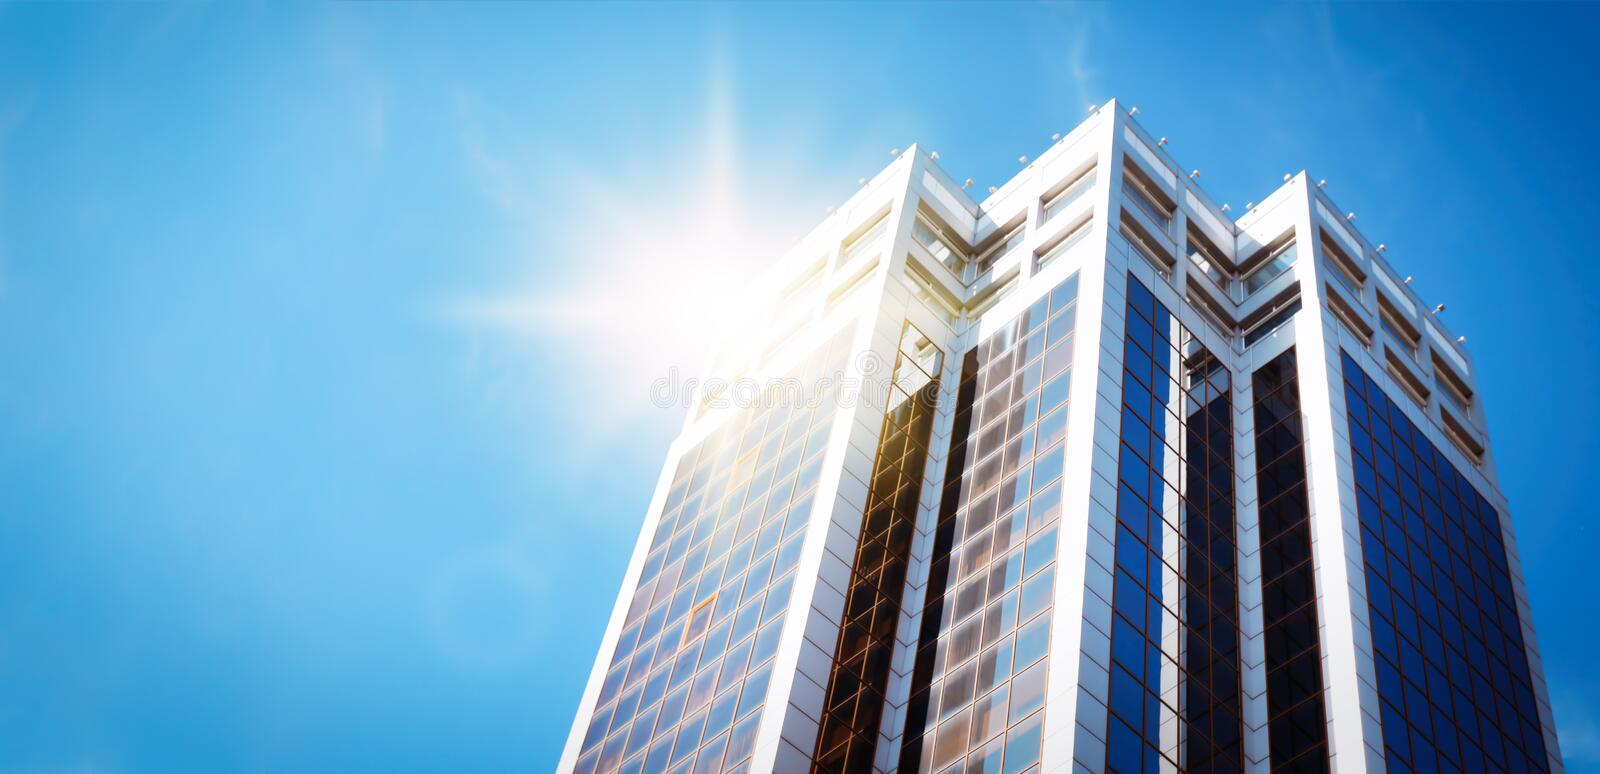 Skyscraper with tinted windows against blue sky, low angle view. Building corporation. Modern skyscraper with tinted windows against blue sky, low angle view royalty free stock photo